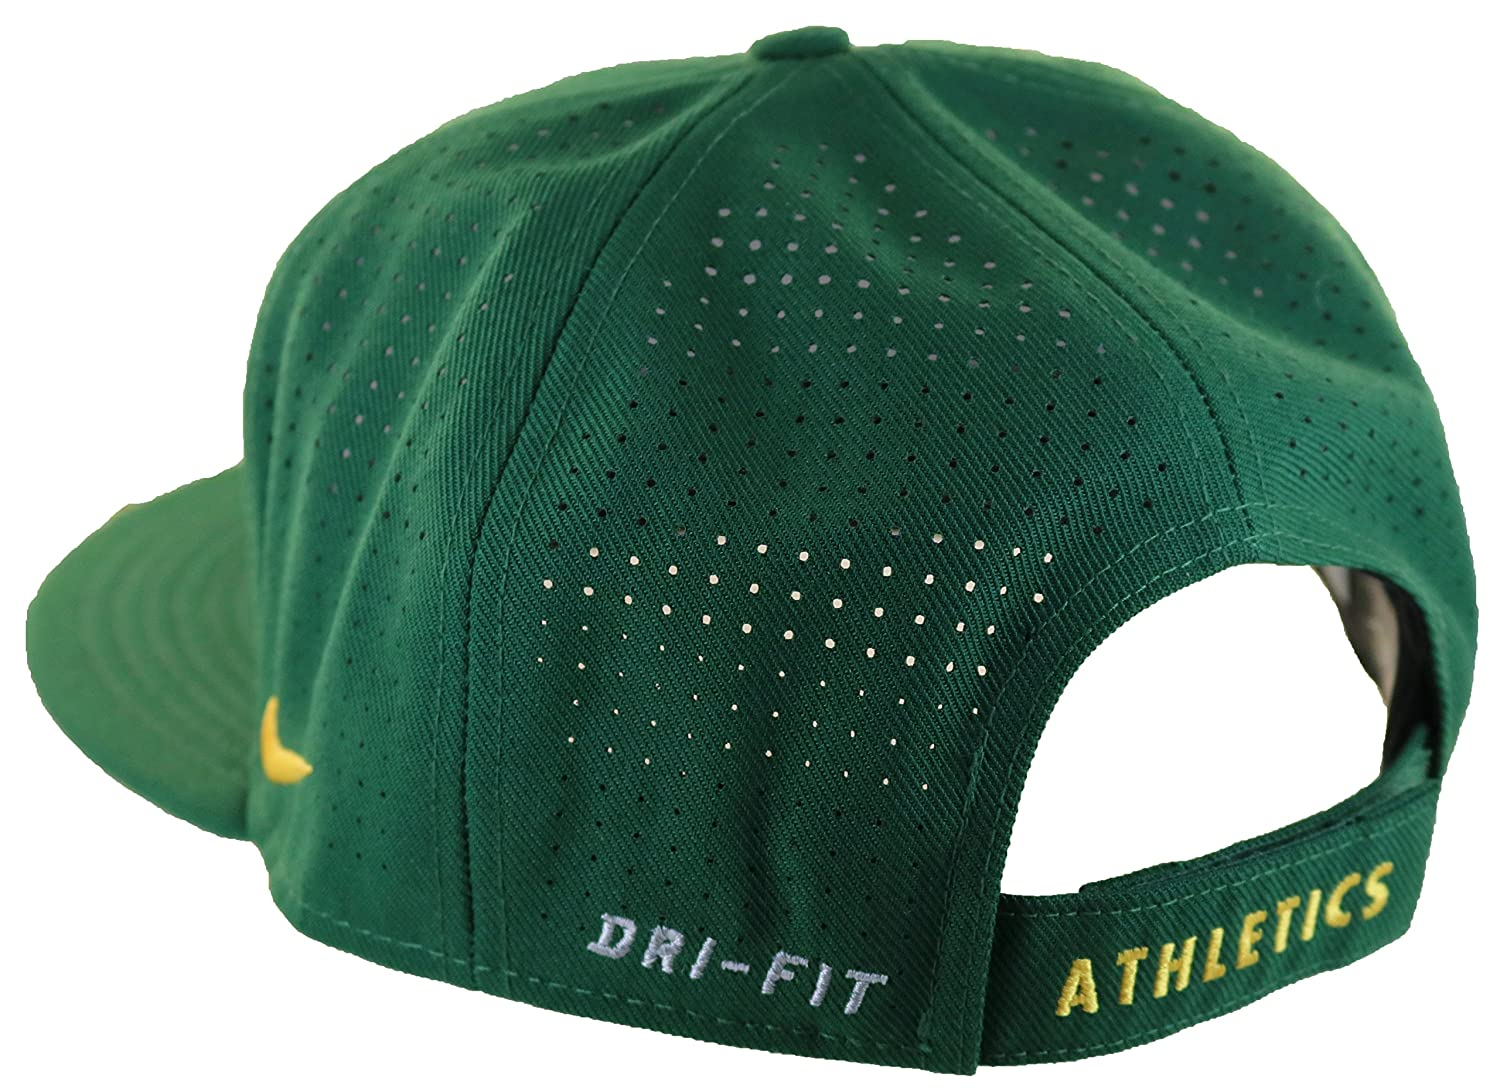 a3c55a4bef2 Amazon.com  Nike Men s Oakland A s Perforated Dri-FIT Adjustable Cap One  Size Green Yellow  Sports   Outdoors